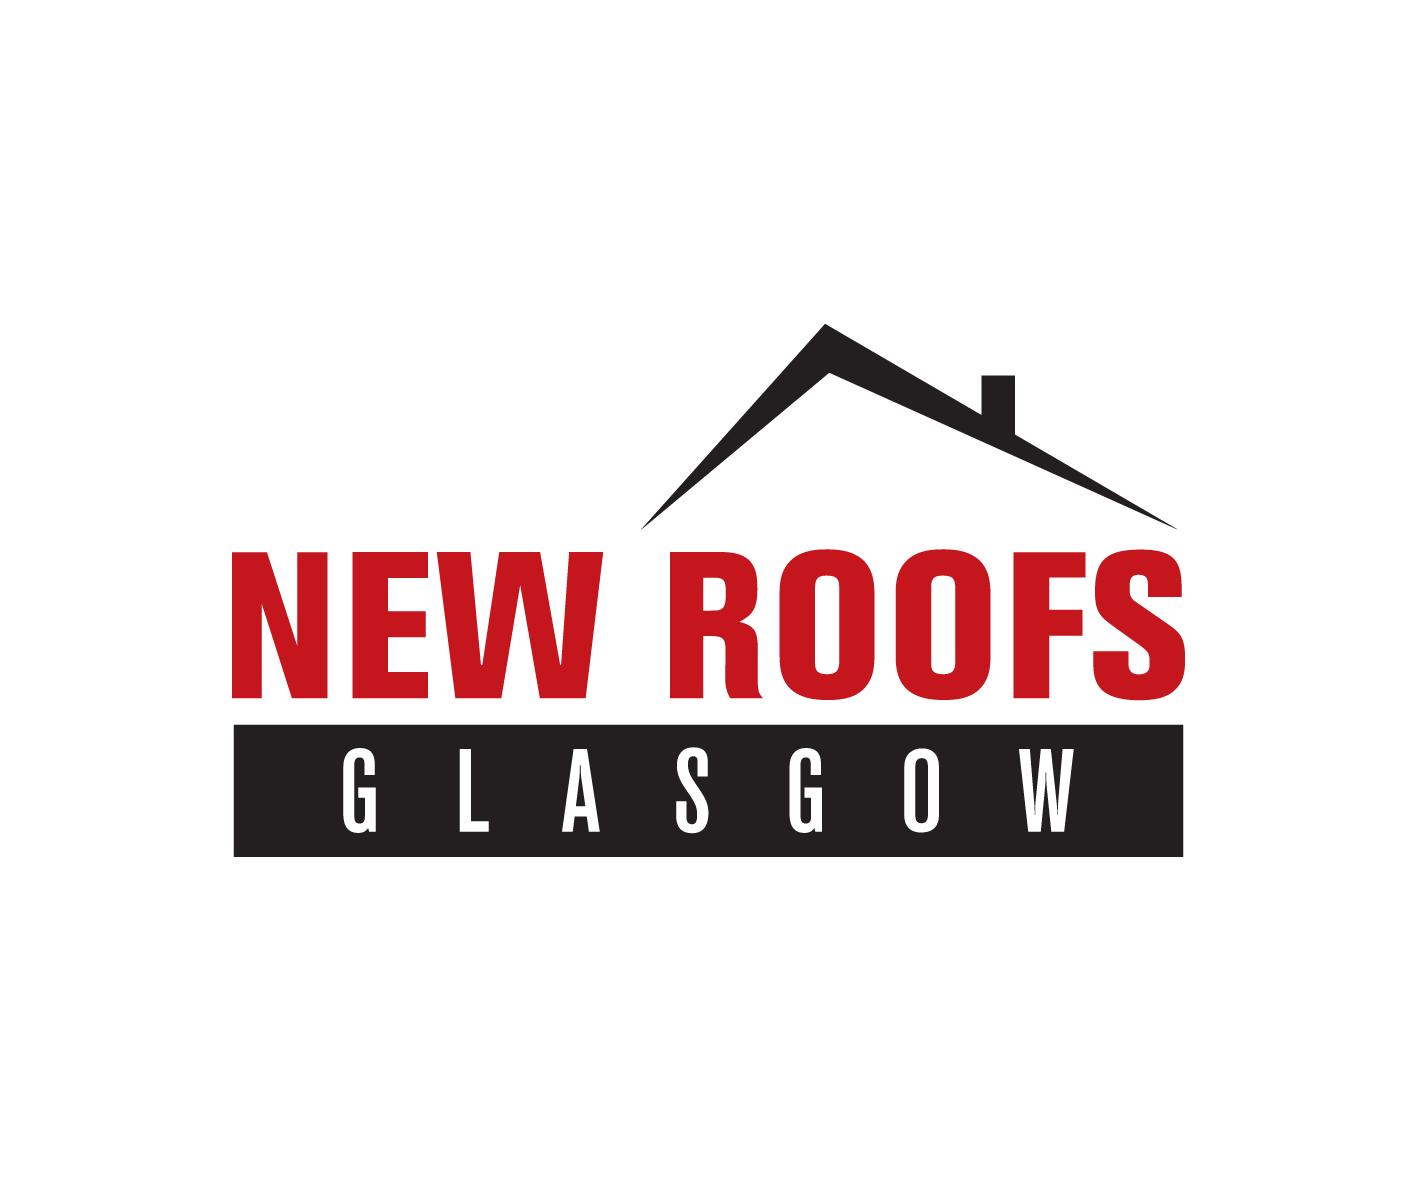 New Roofs Glasgow